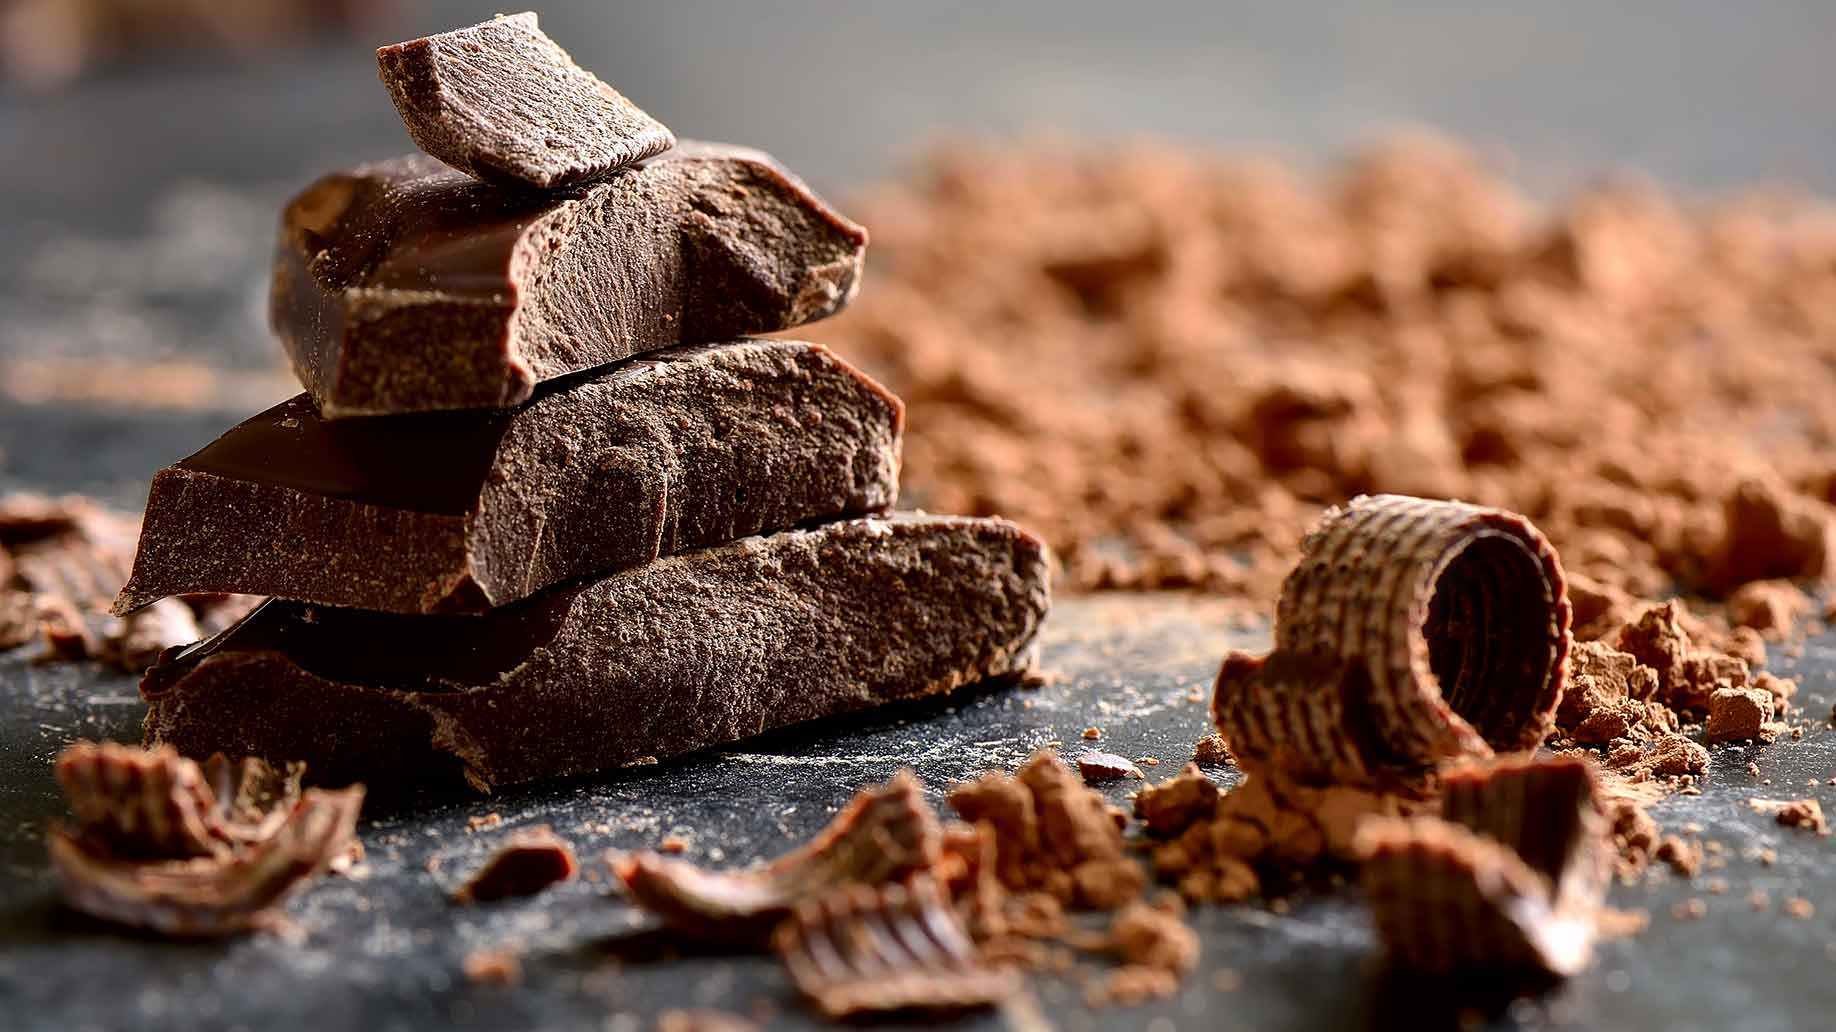 dark chocolate over milk chocolate health benefits antioxidants flavonoids